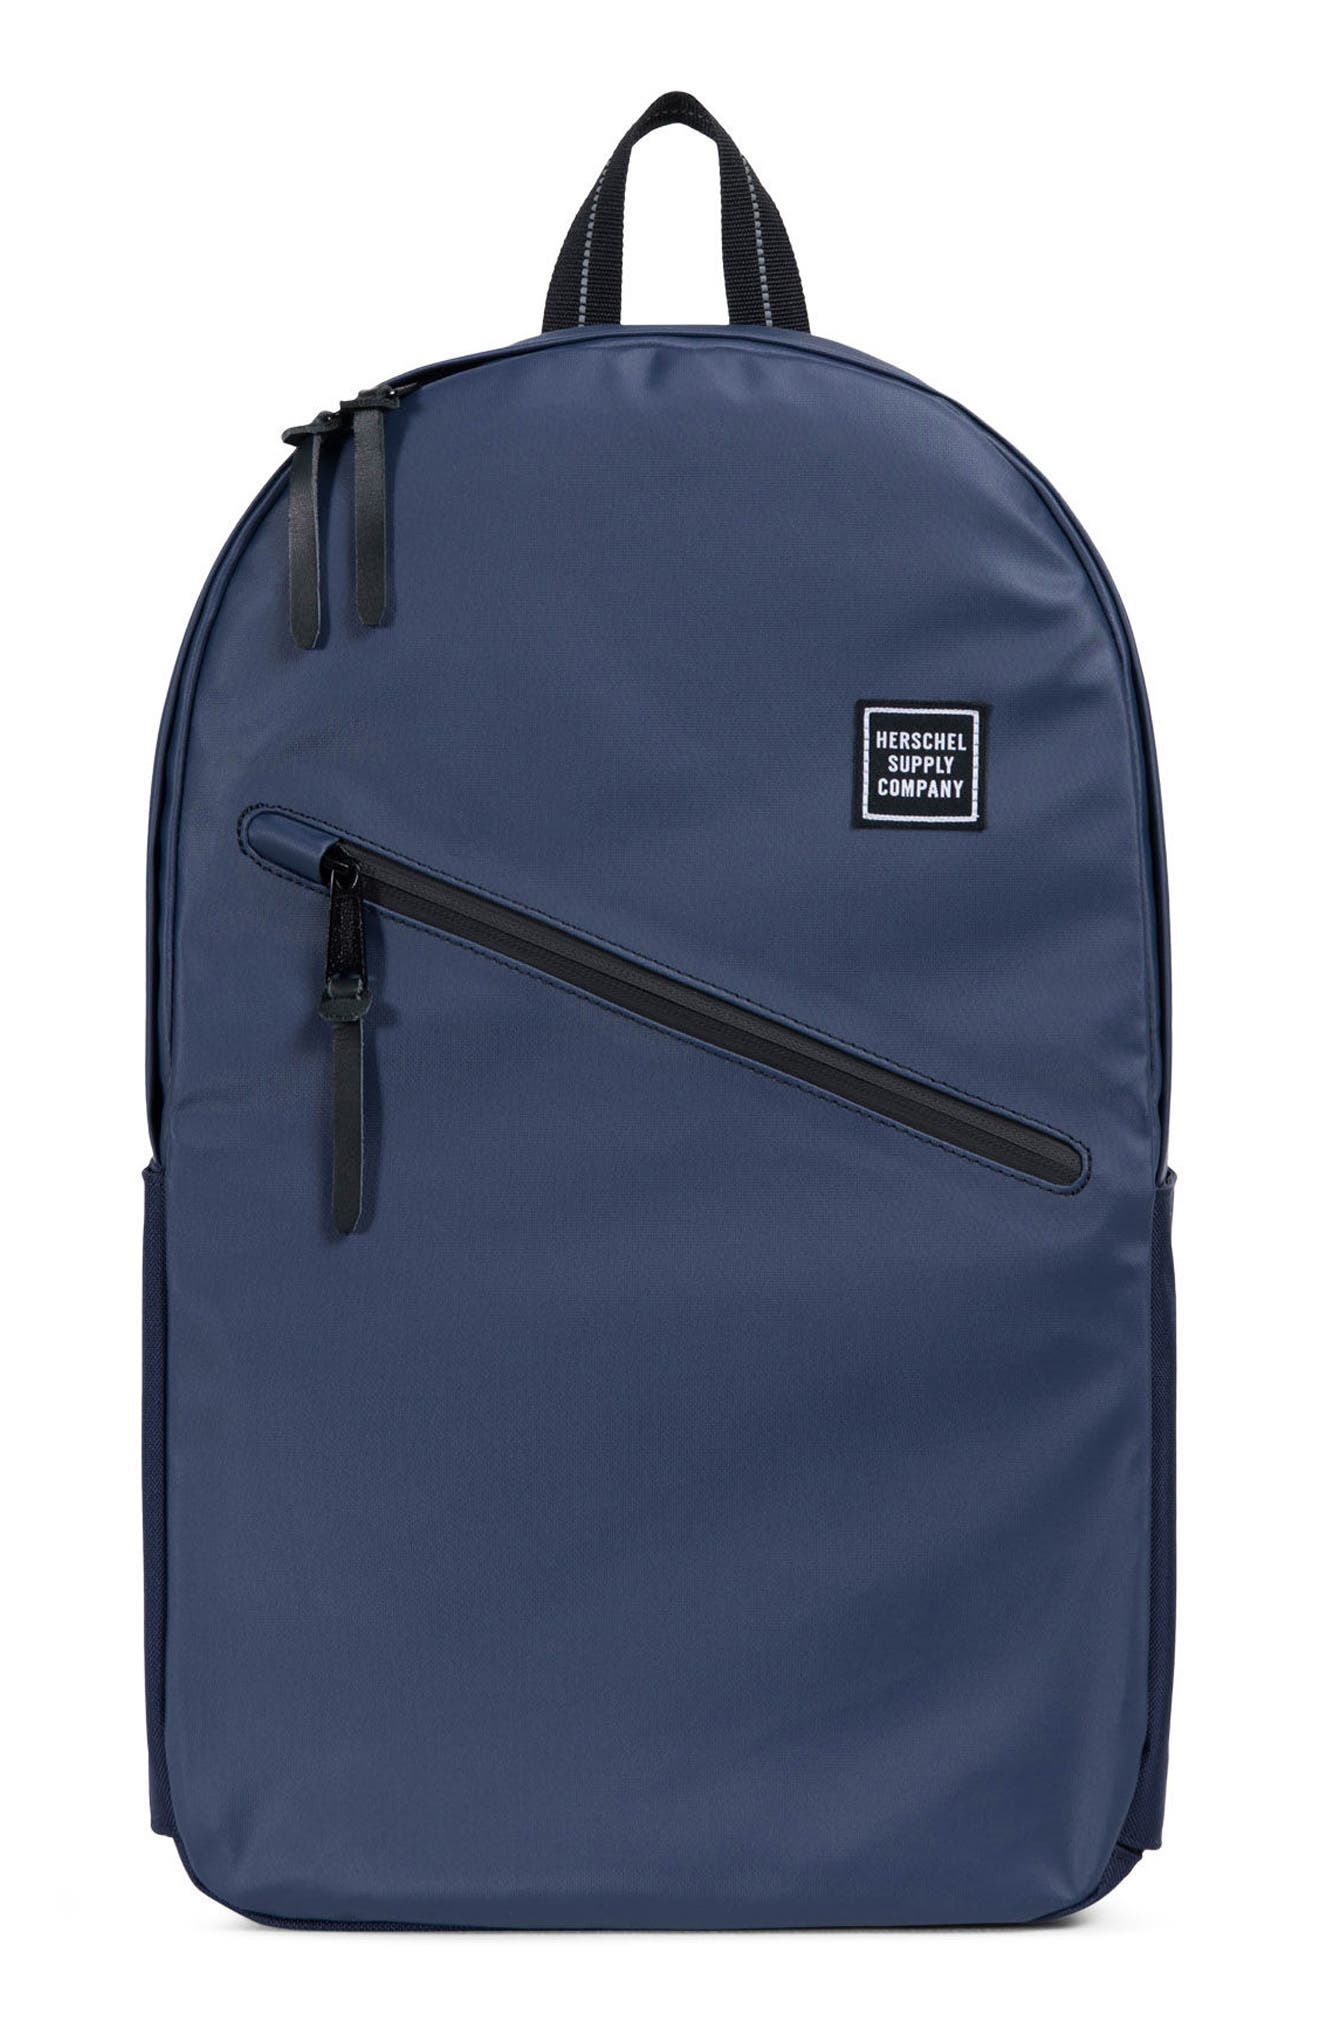 Parker Studio Collection Backpack,                             Main thumbnail 1, color,                             Peacoat/ Black